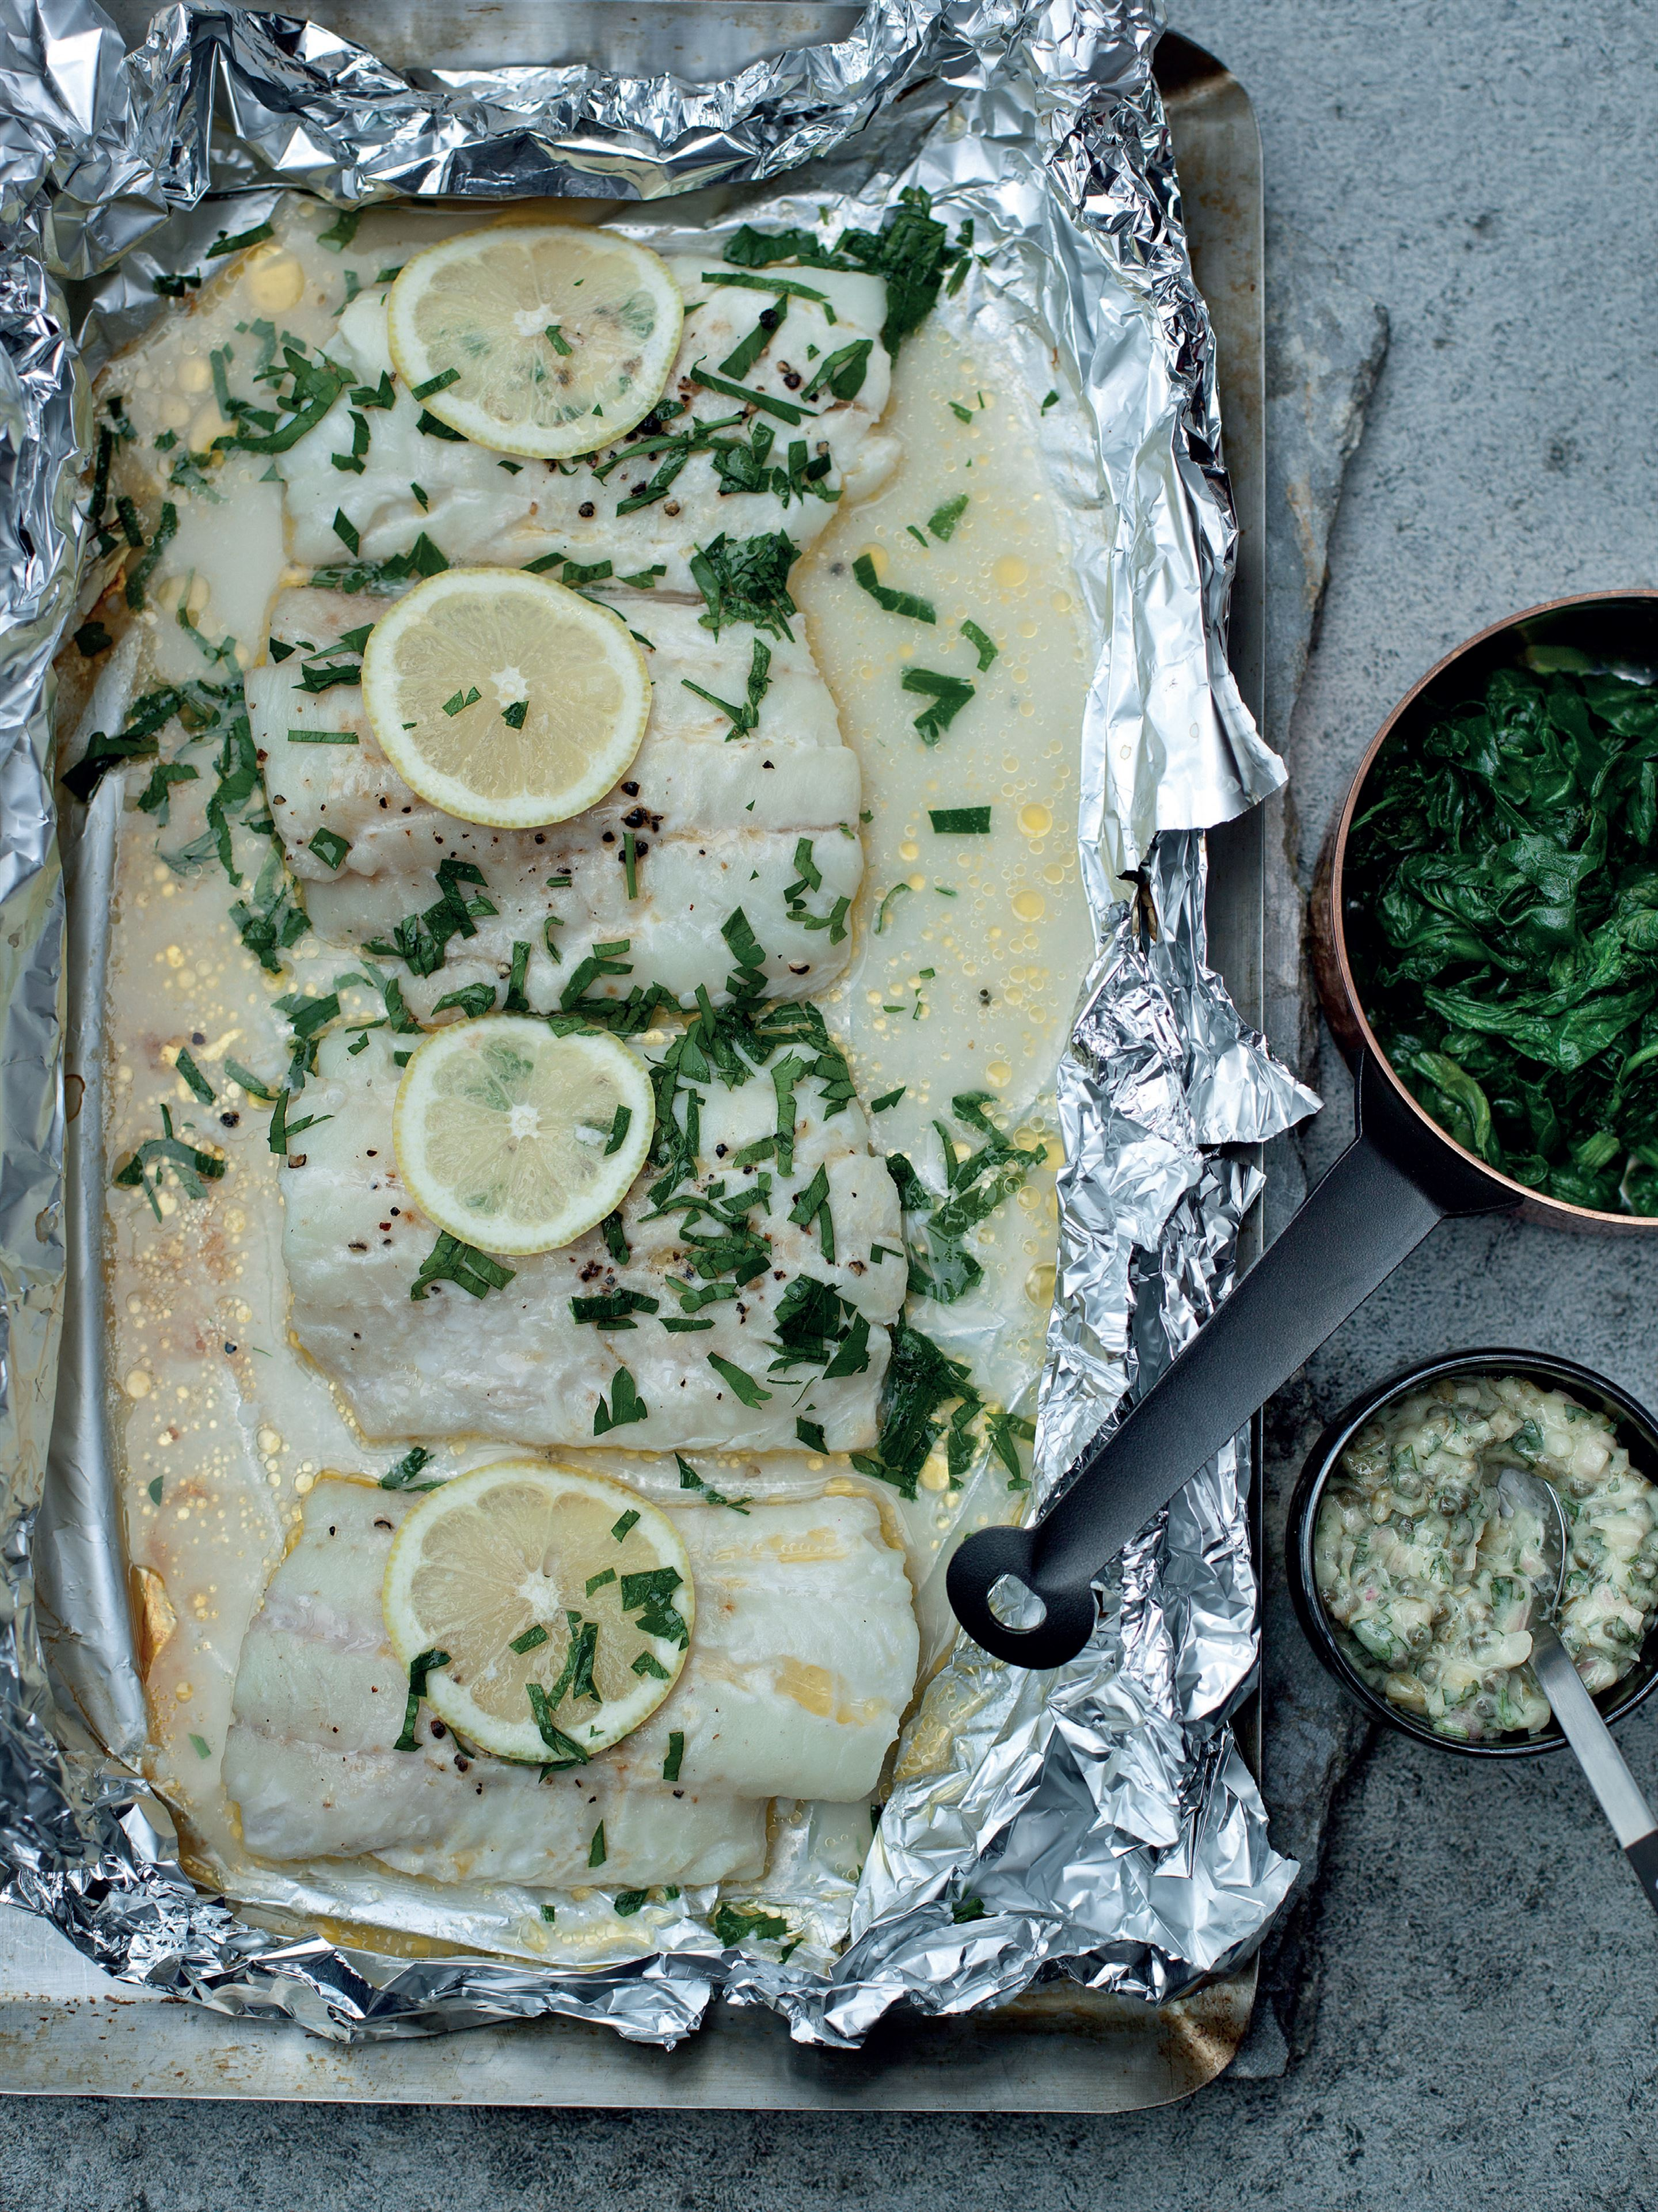 Grilled haddock with spinach and tartare sauce